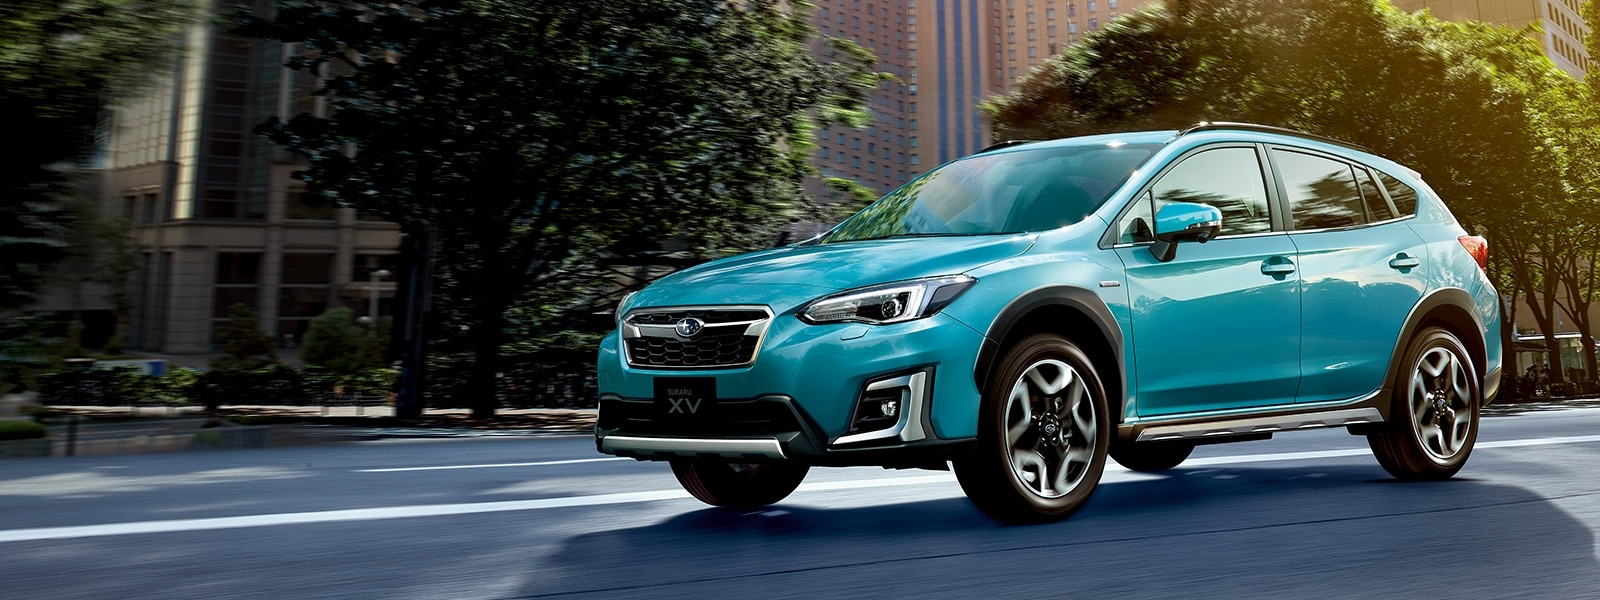 SUBARU XV 2.0i-S EyeSight サイドスタイル2